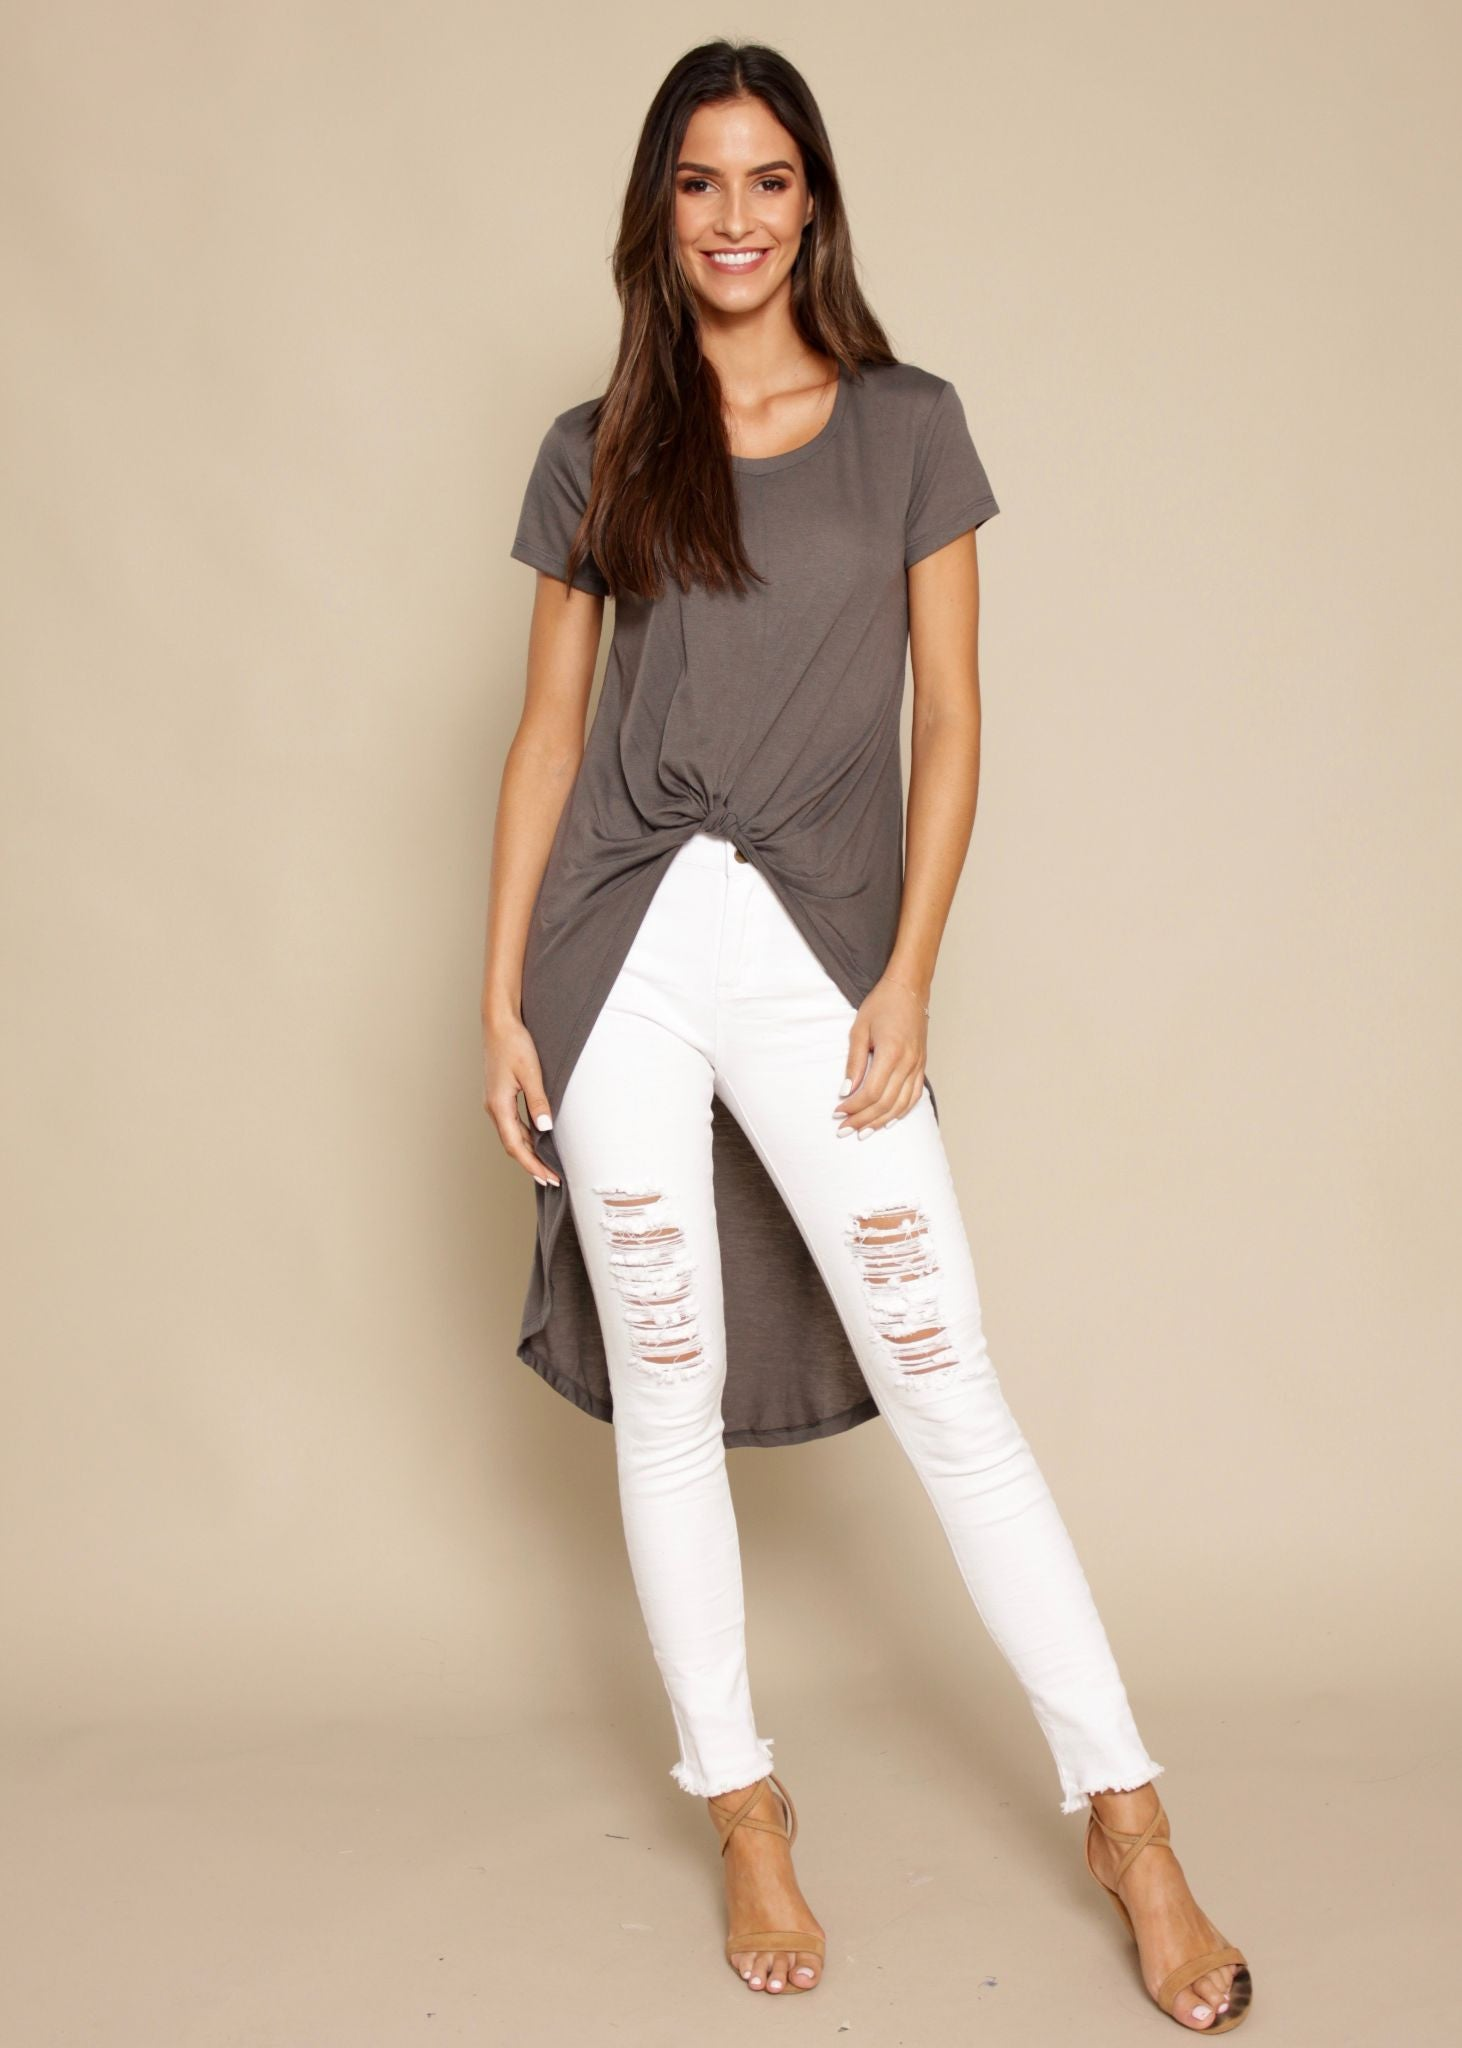 Refuge Second Skin Jeans - White